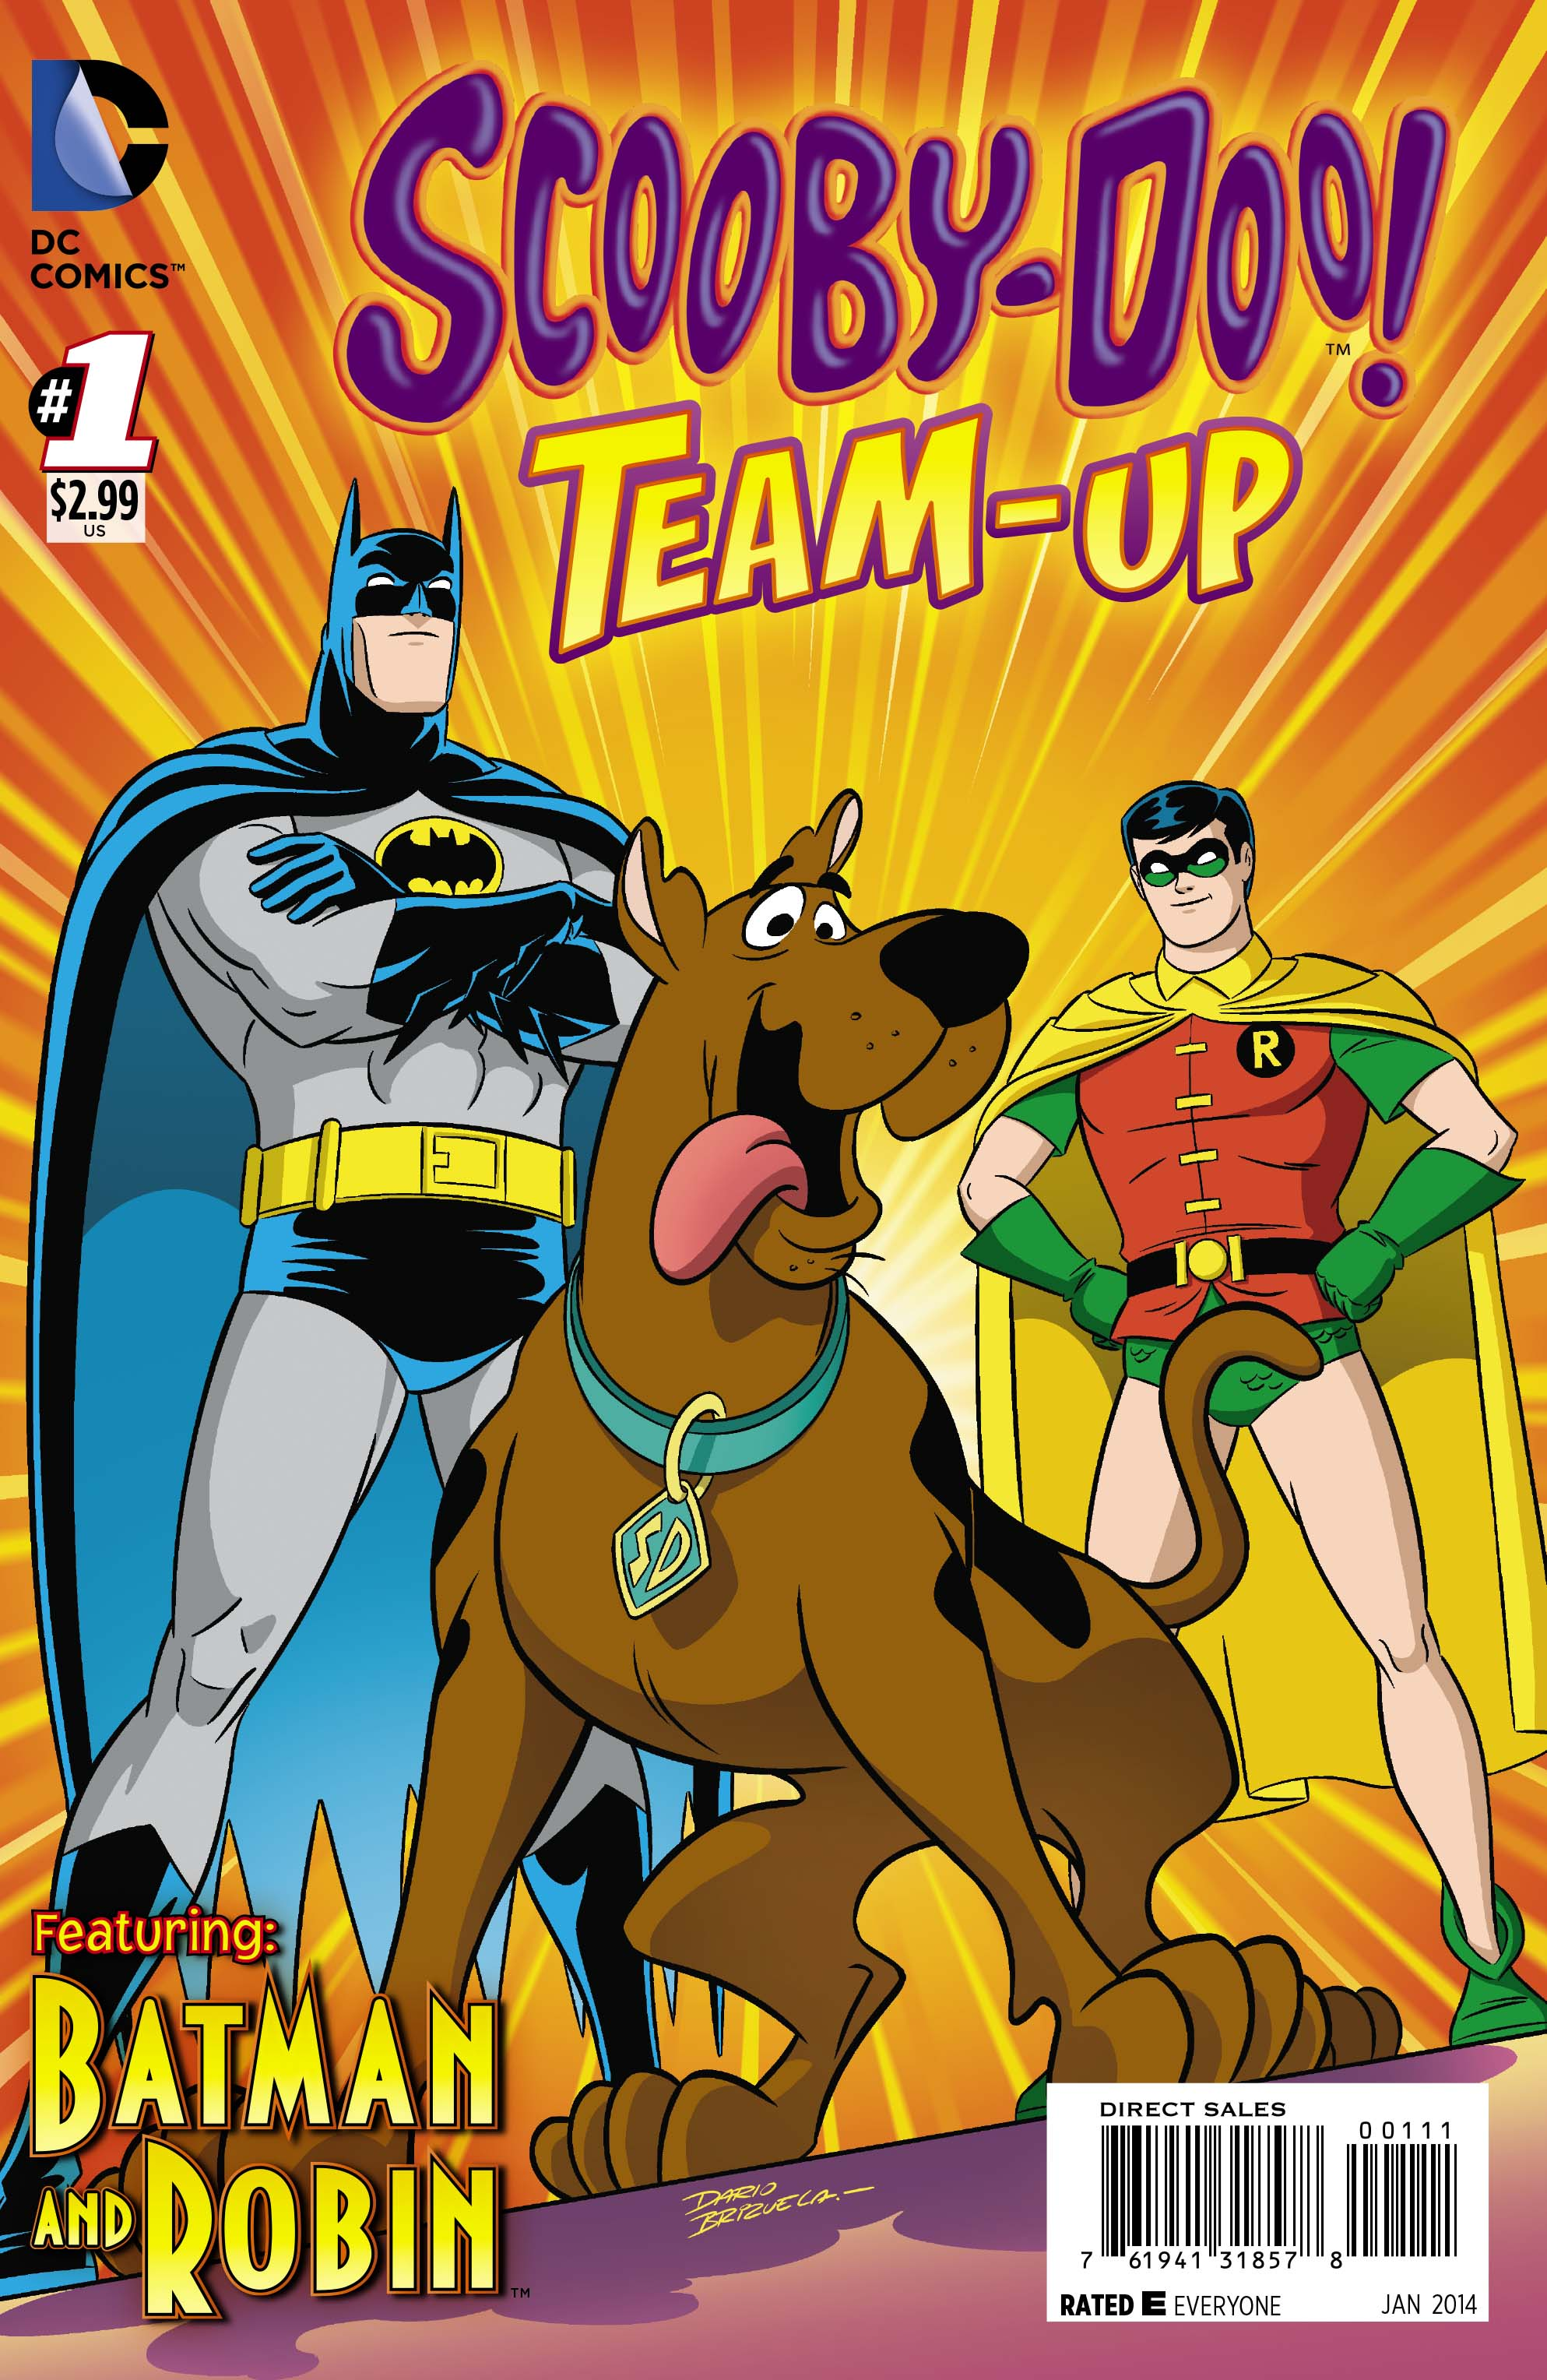 EXCLUSIVE PREVIEW: Scooby-Doo Team-Up #1, Starring Batman ...